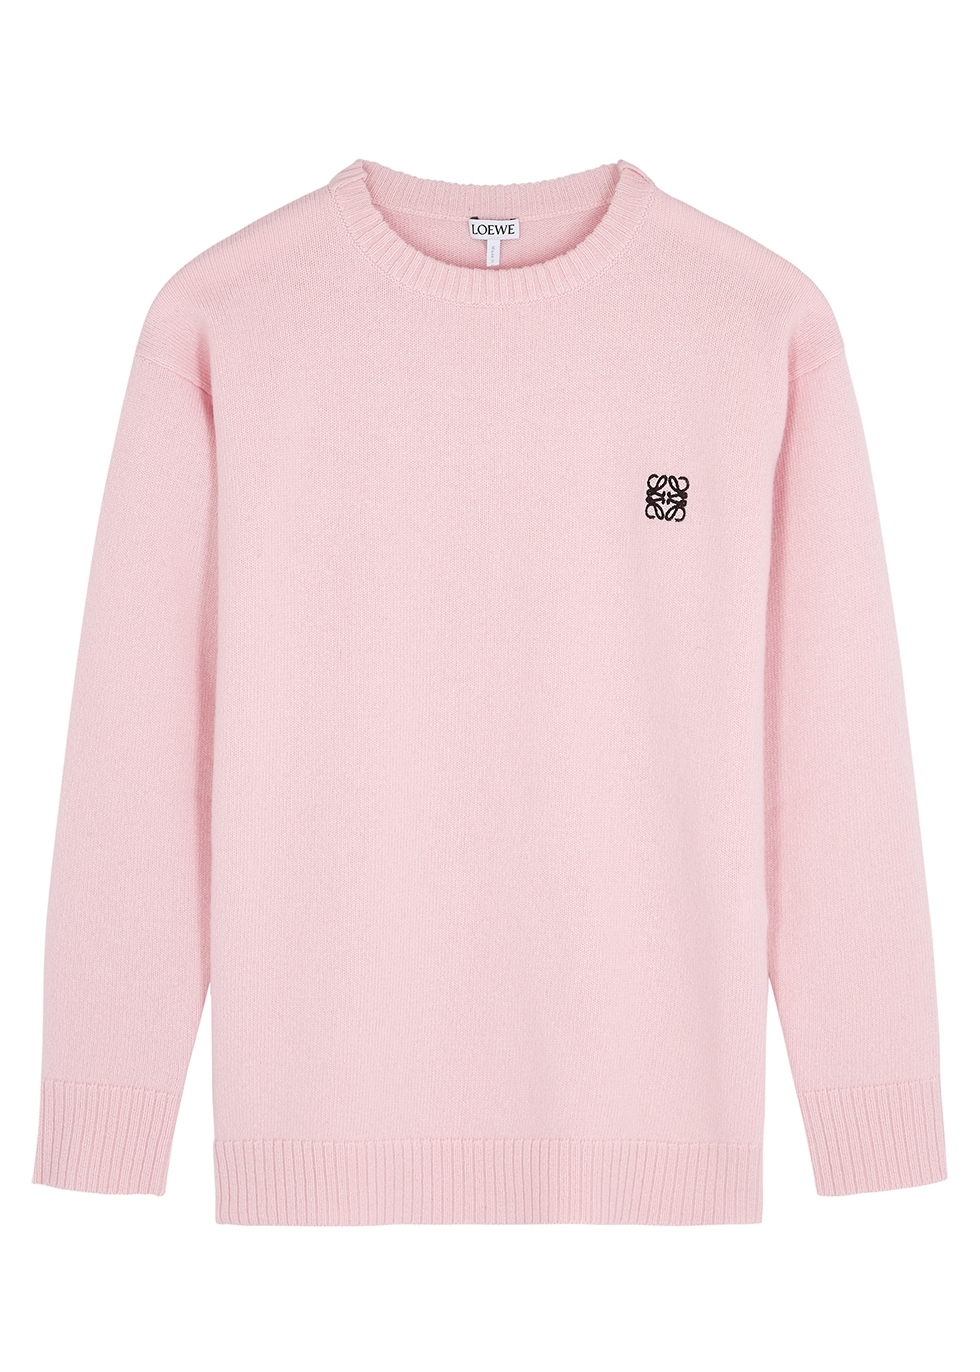 9e9514f44 Women's Designer Knitwear and Jumpers - Harvey Nichols